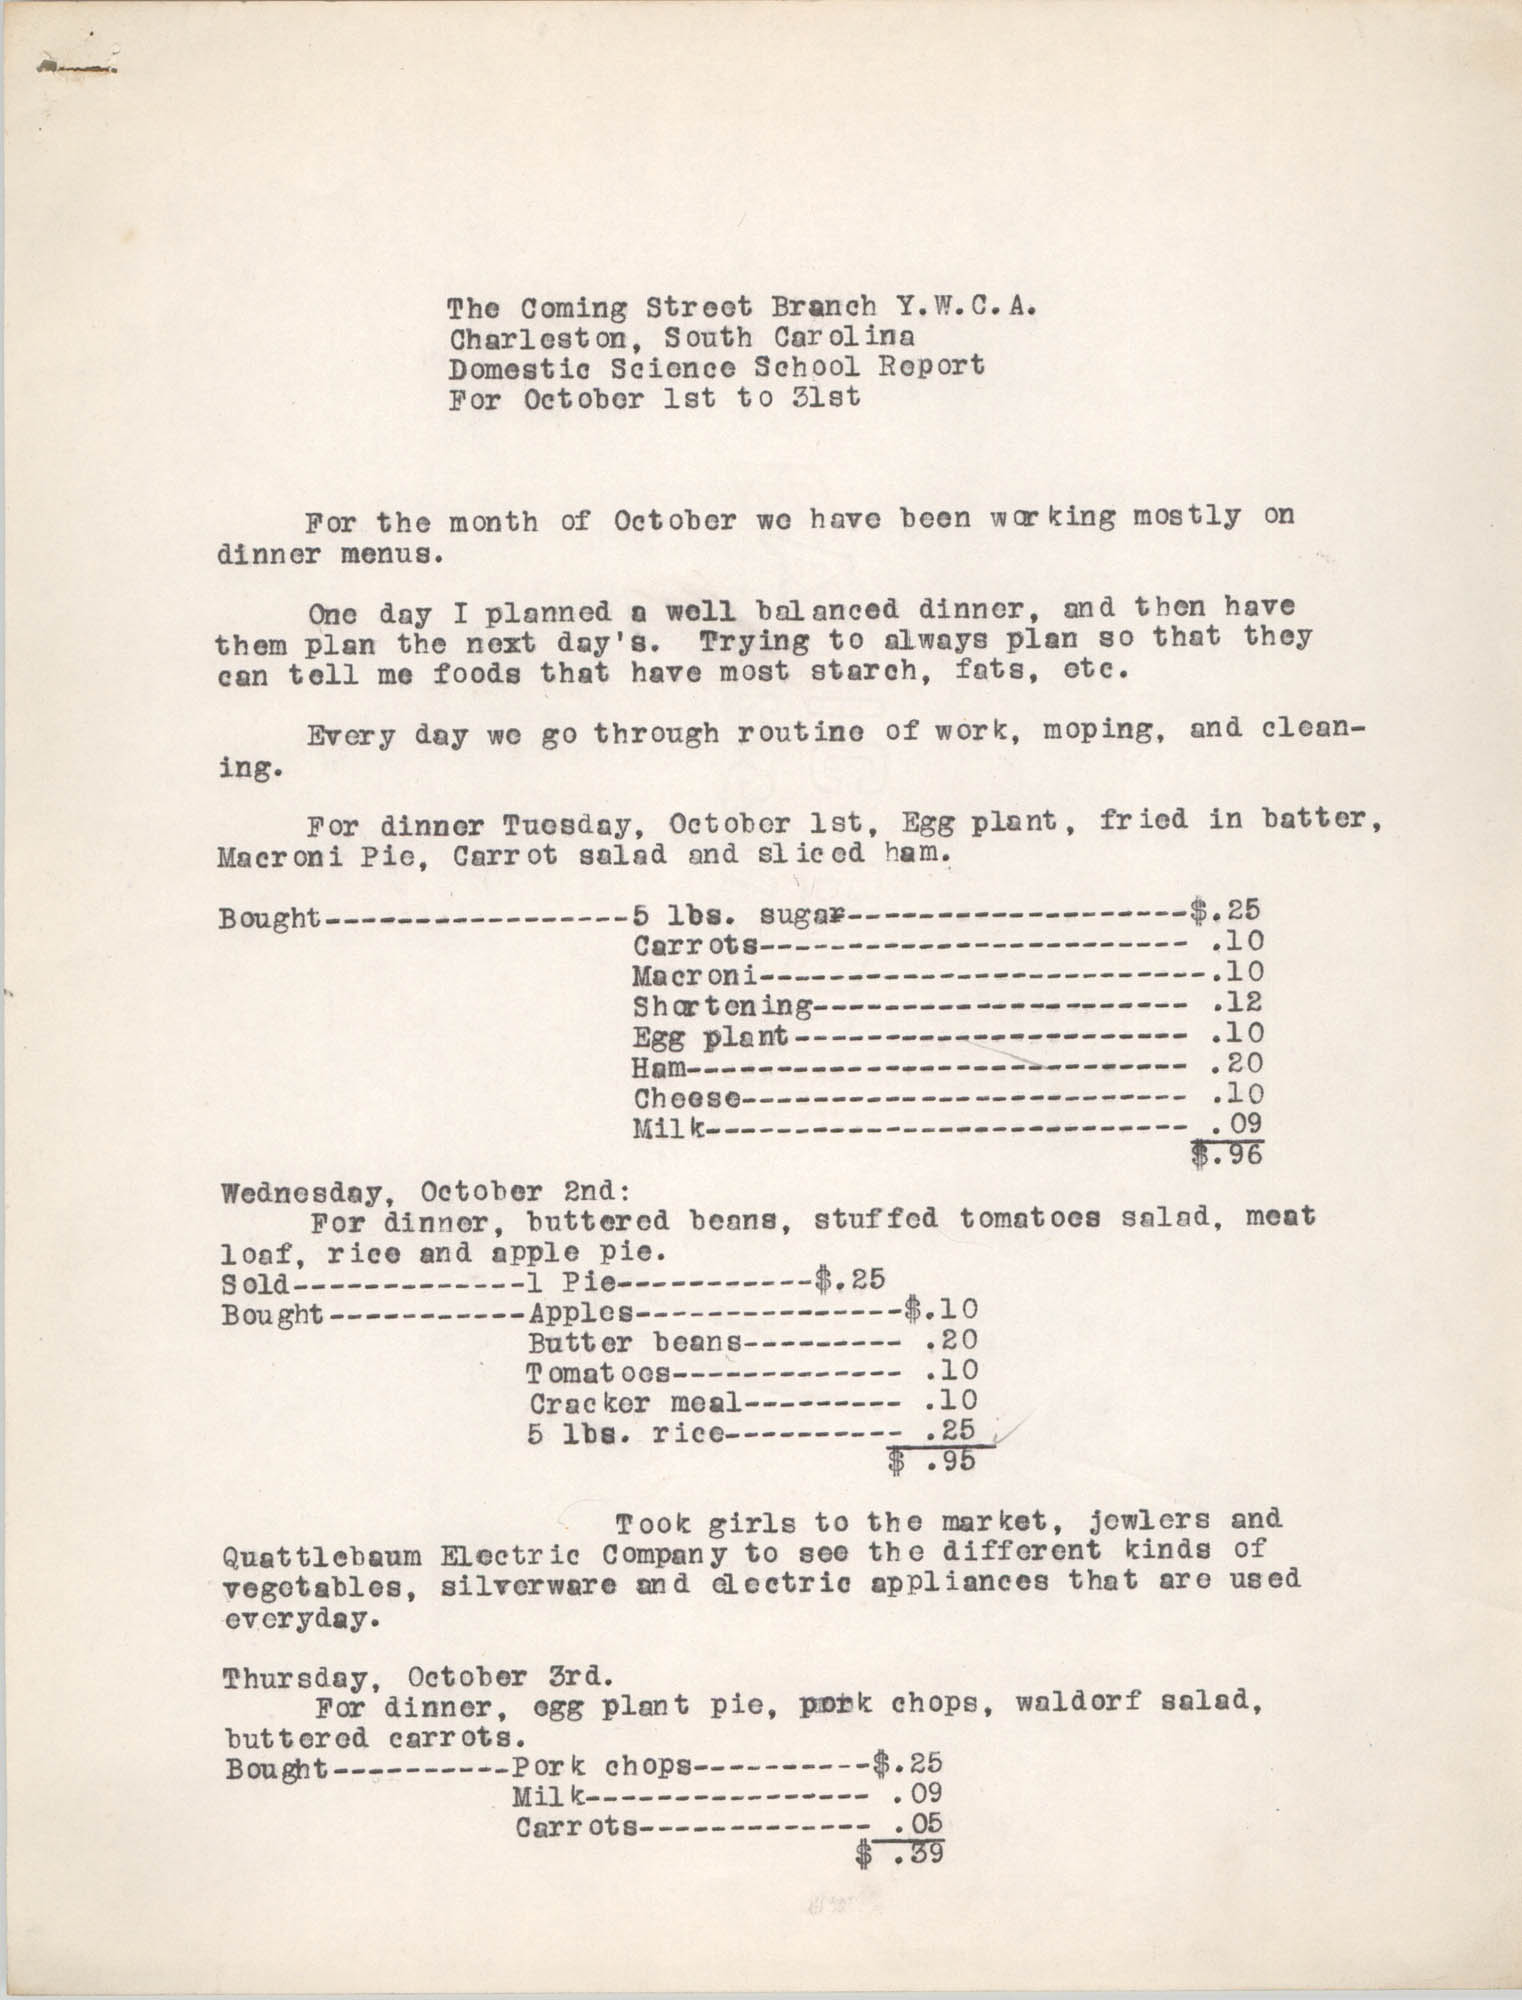 Monthly Report for the Coming Street Y.W.C.A., Domestic Science School, October 1940, Page 1